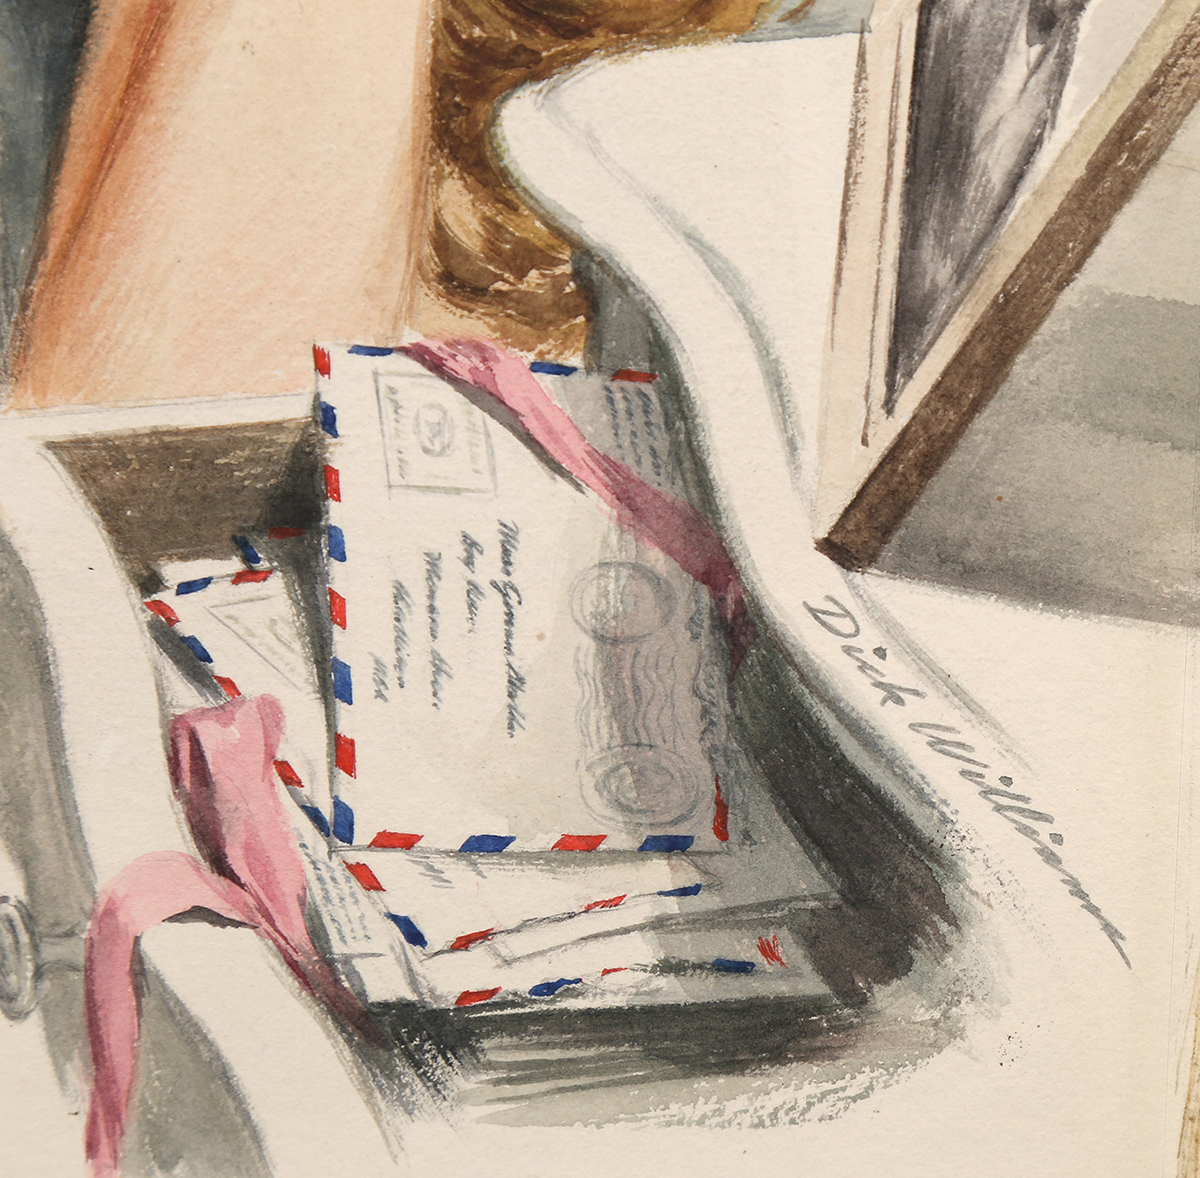 A close up view of the artist's signature as it appears in the lower right corner of the illustration.